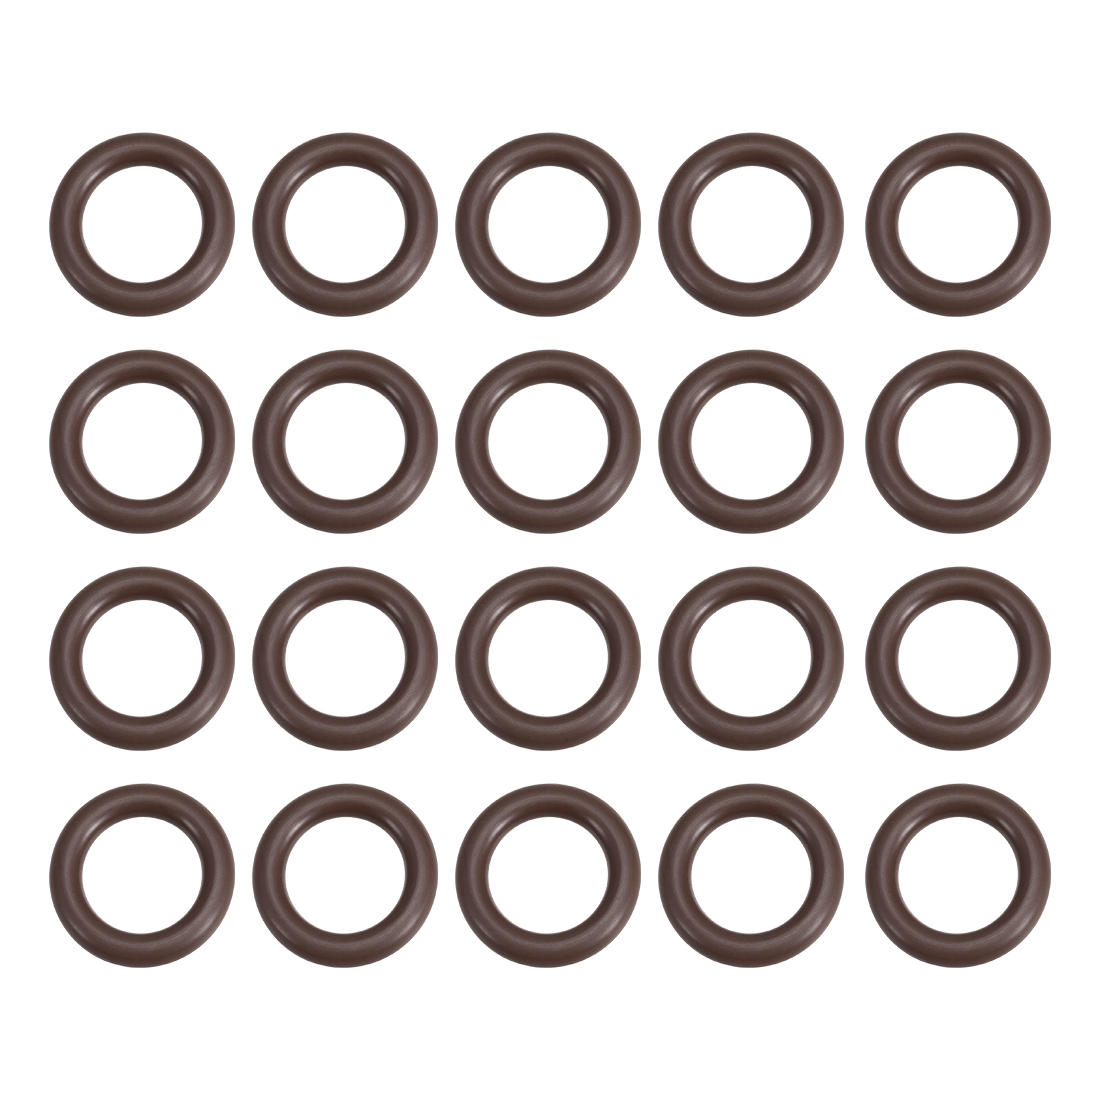 uxcell 10 Pcs Fluororubber Gasket Sanitary Tri Clamp Washer 24mm x 14mm O-Ring